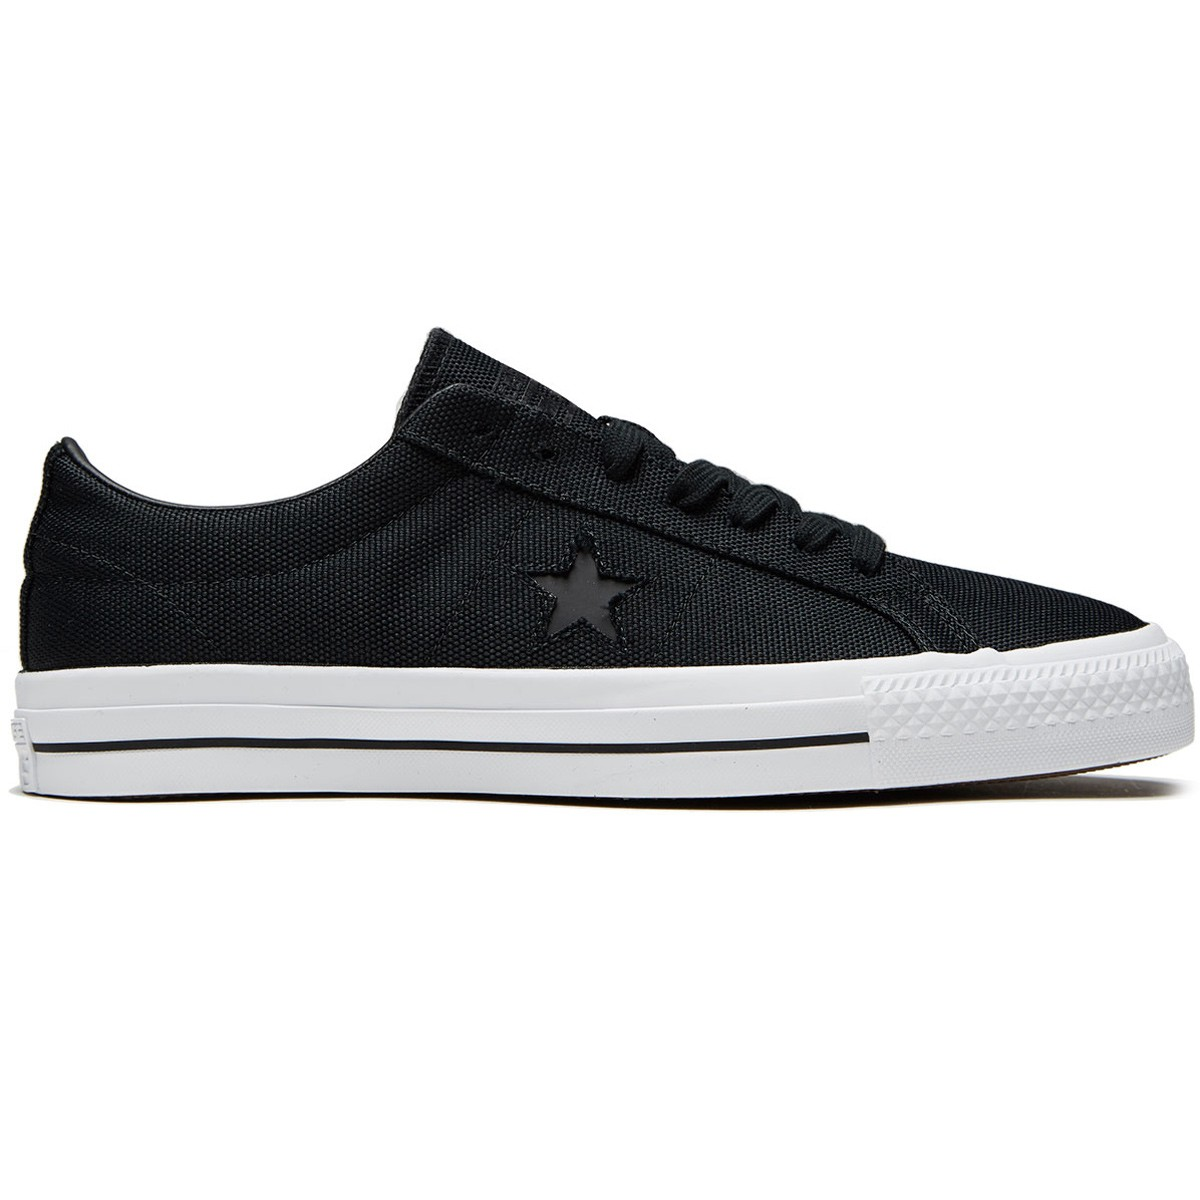 fbafe1fb467aca Converse X Mike Anderson One Star Pro Shoes - Black - 7.0